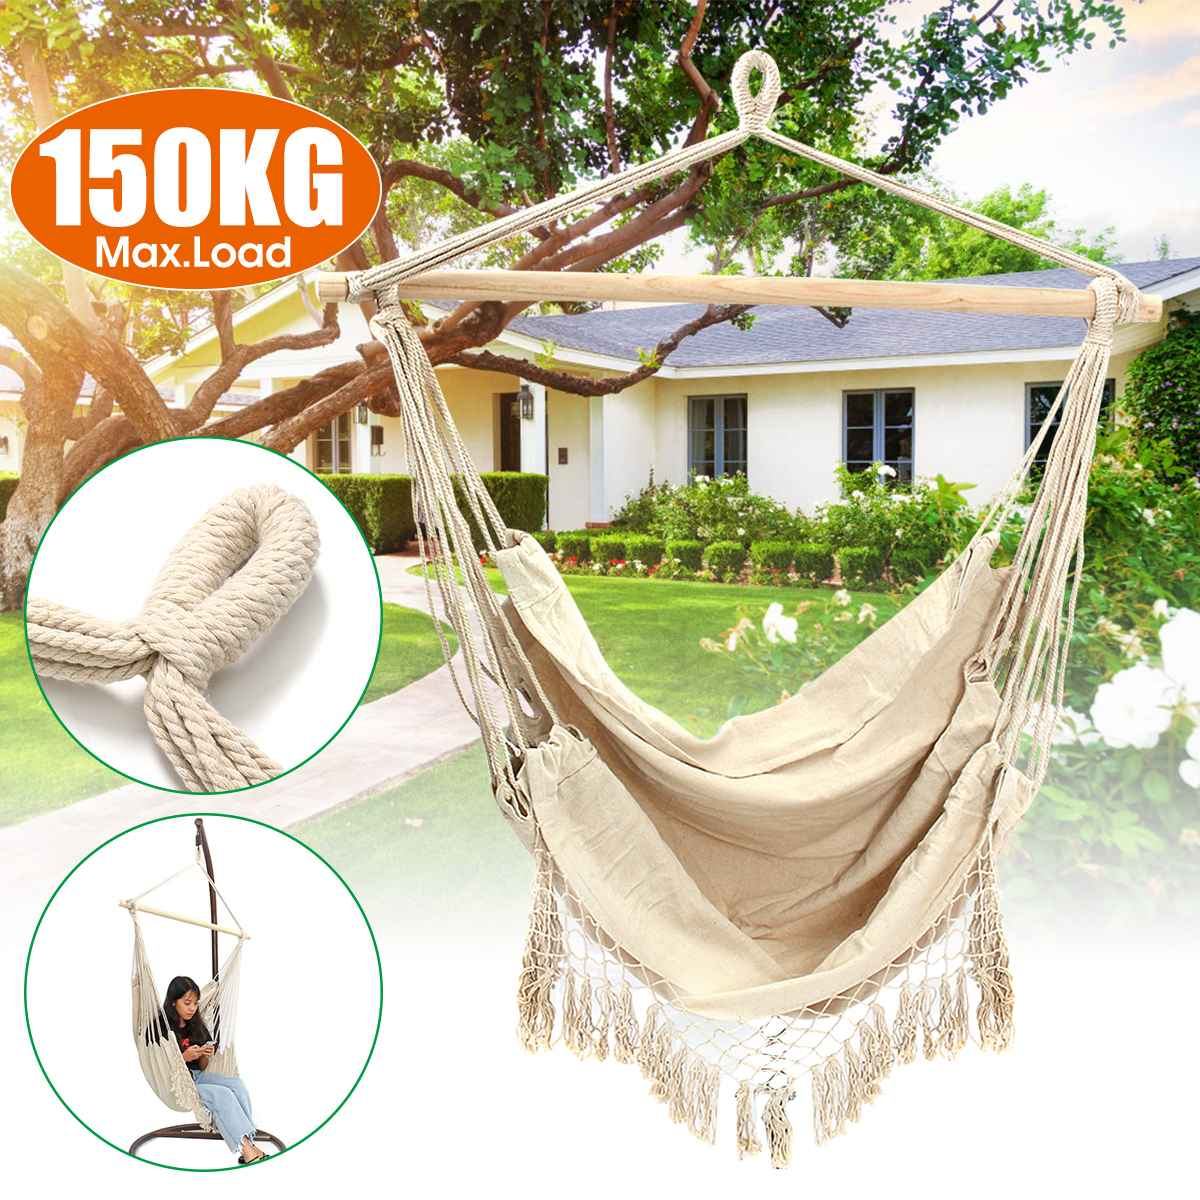 Nordic Style Hammock Outdoor Indoor Furniture Garden Swing For Adult Children Swinging Chair With Wooden Stick